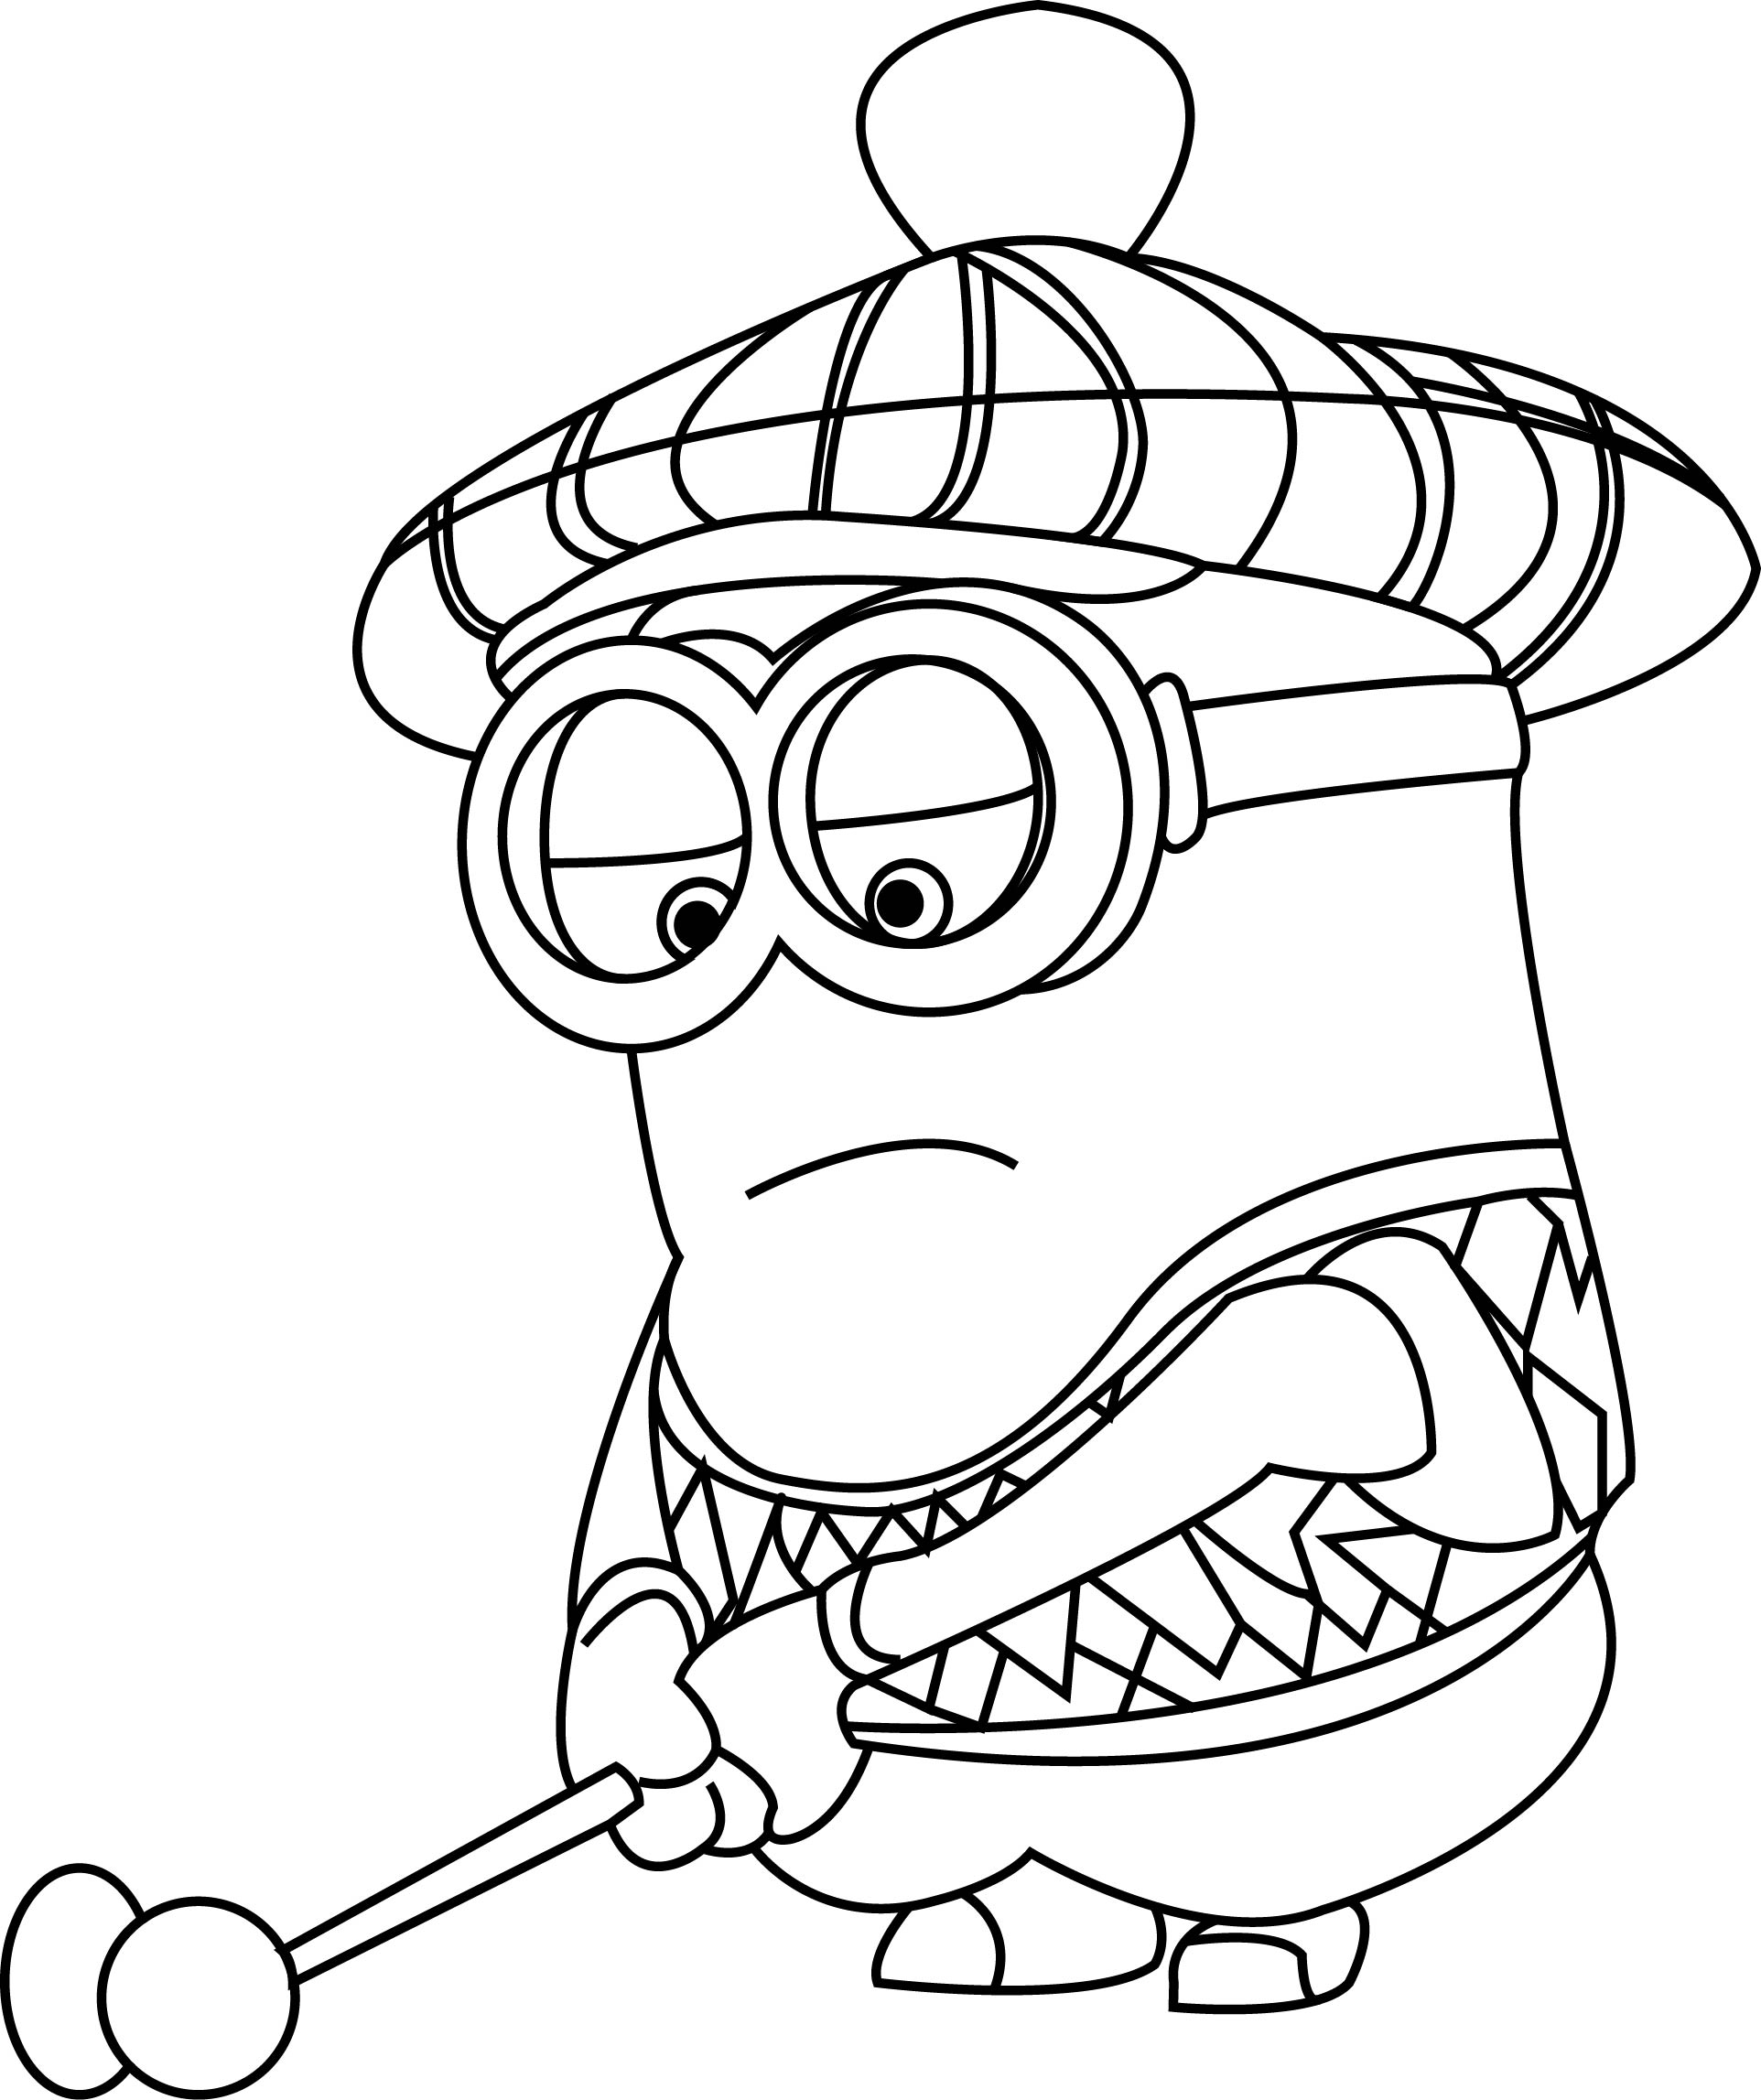 minion kevin coloring pages minion coloring pages kevin at getcoloringscom free coloring minion kevin pages